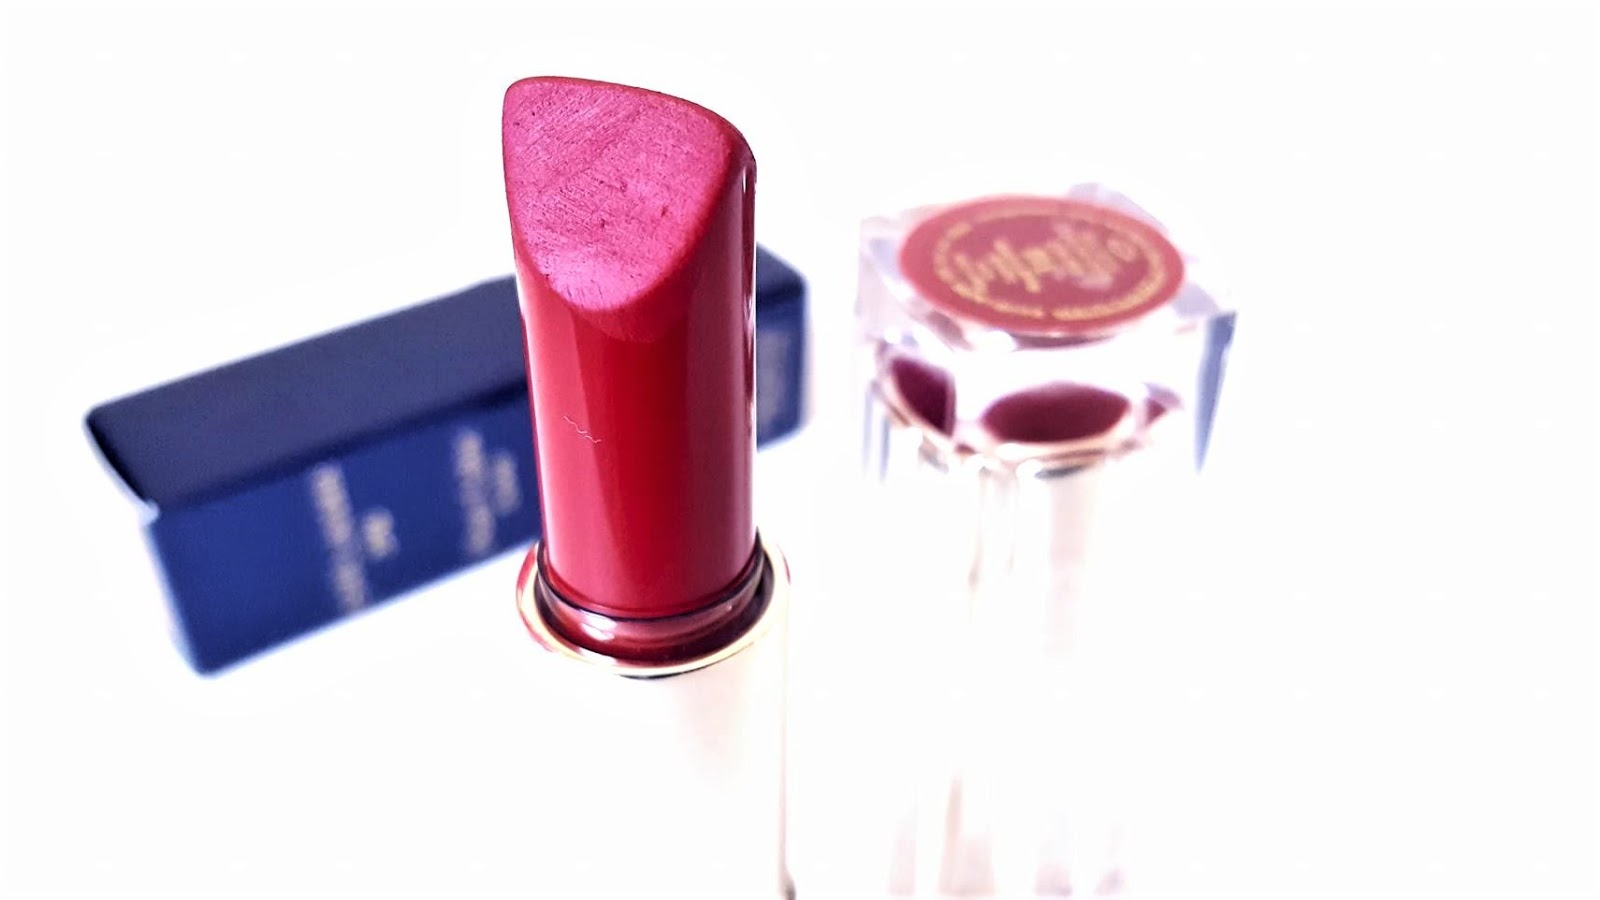 ON CRAQUE ABSOLUEMENT ! PURE COLOR LOVE - ESTEE LAUDER ♥